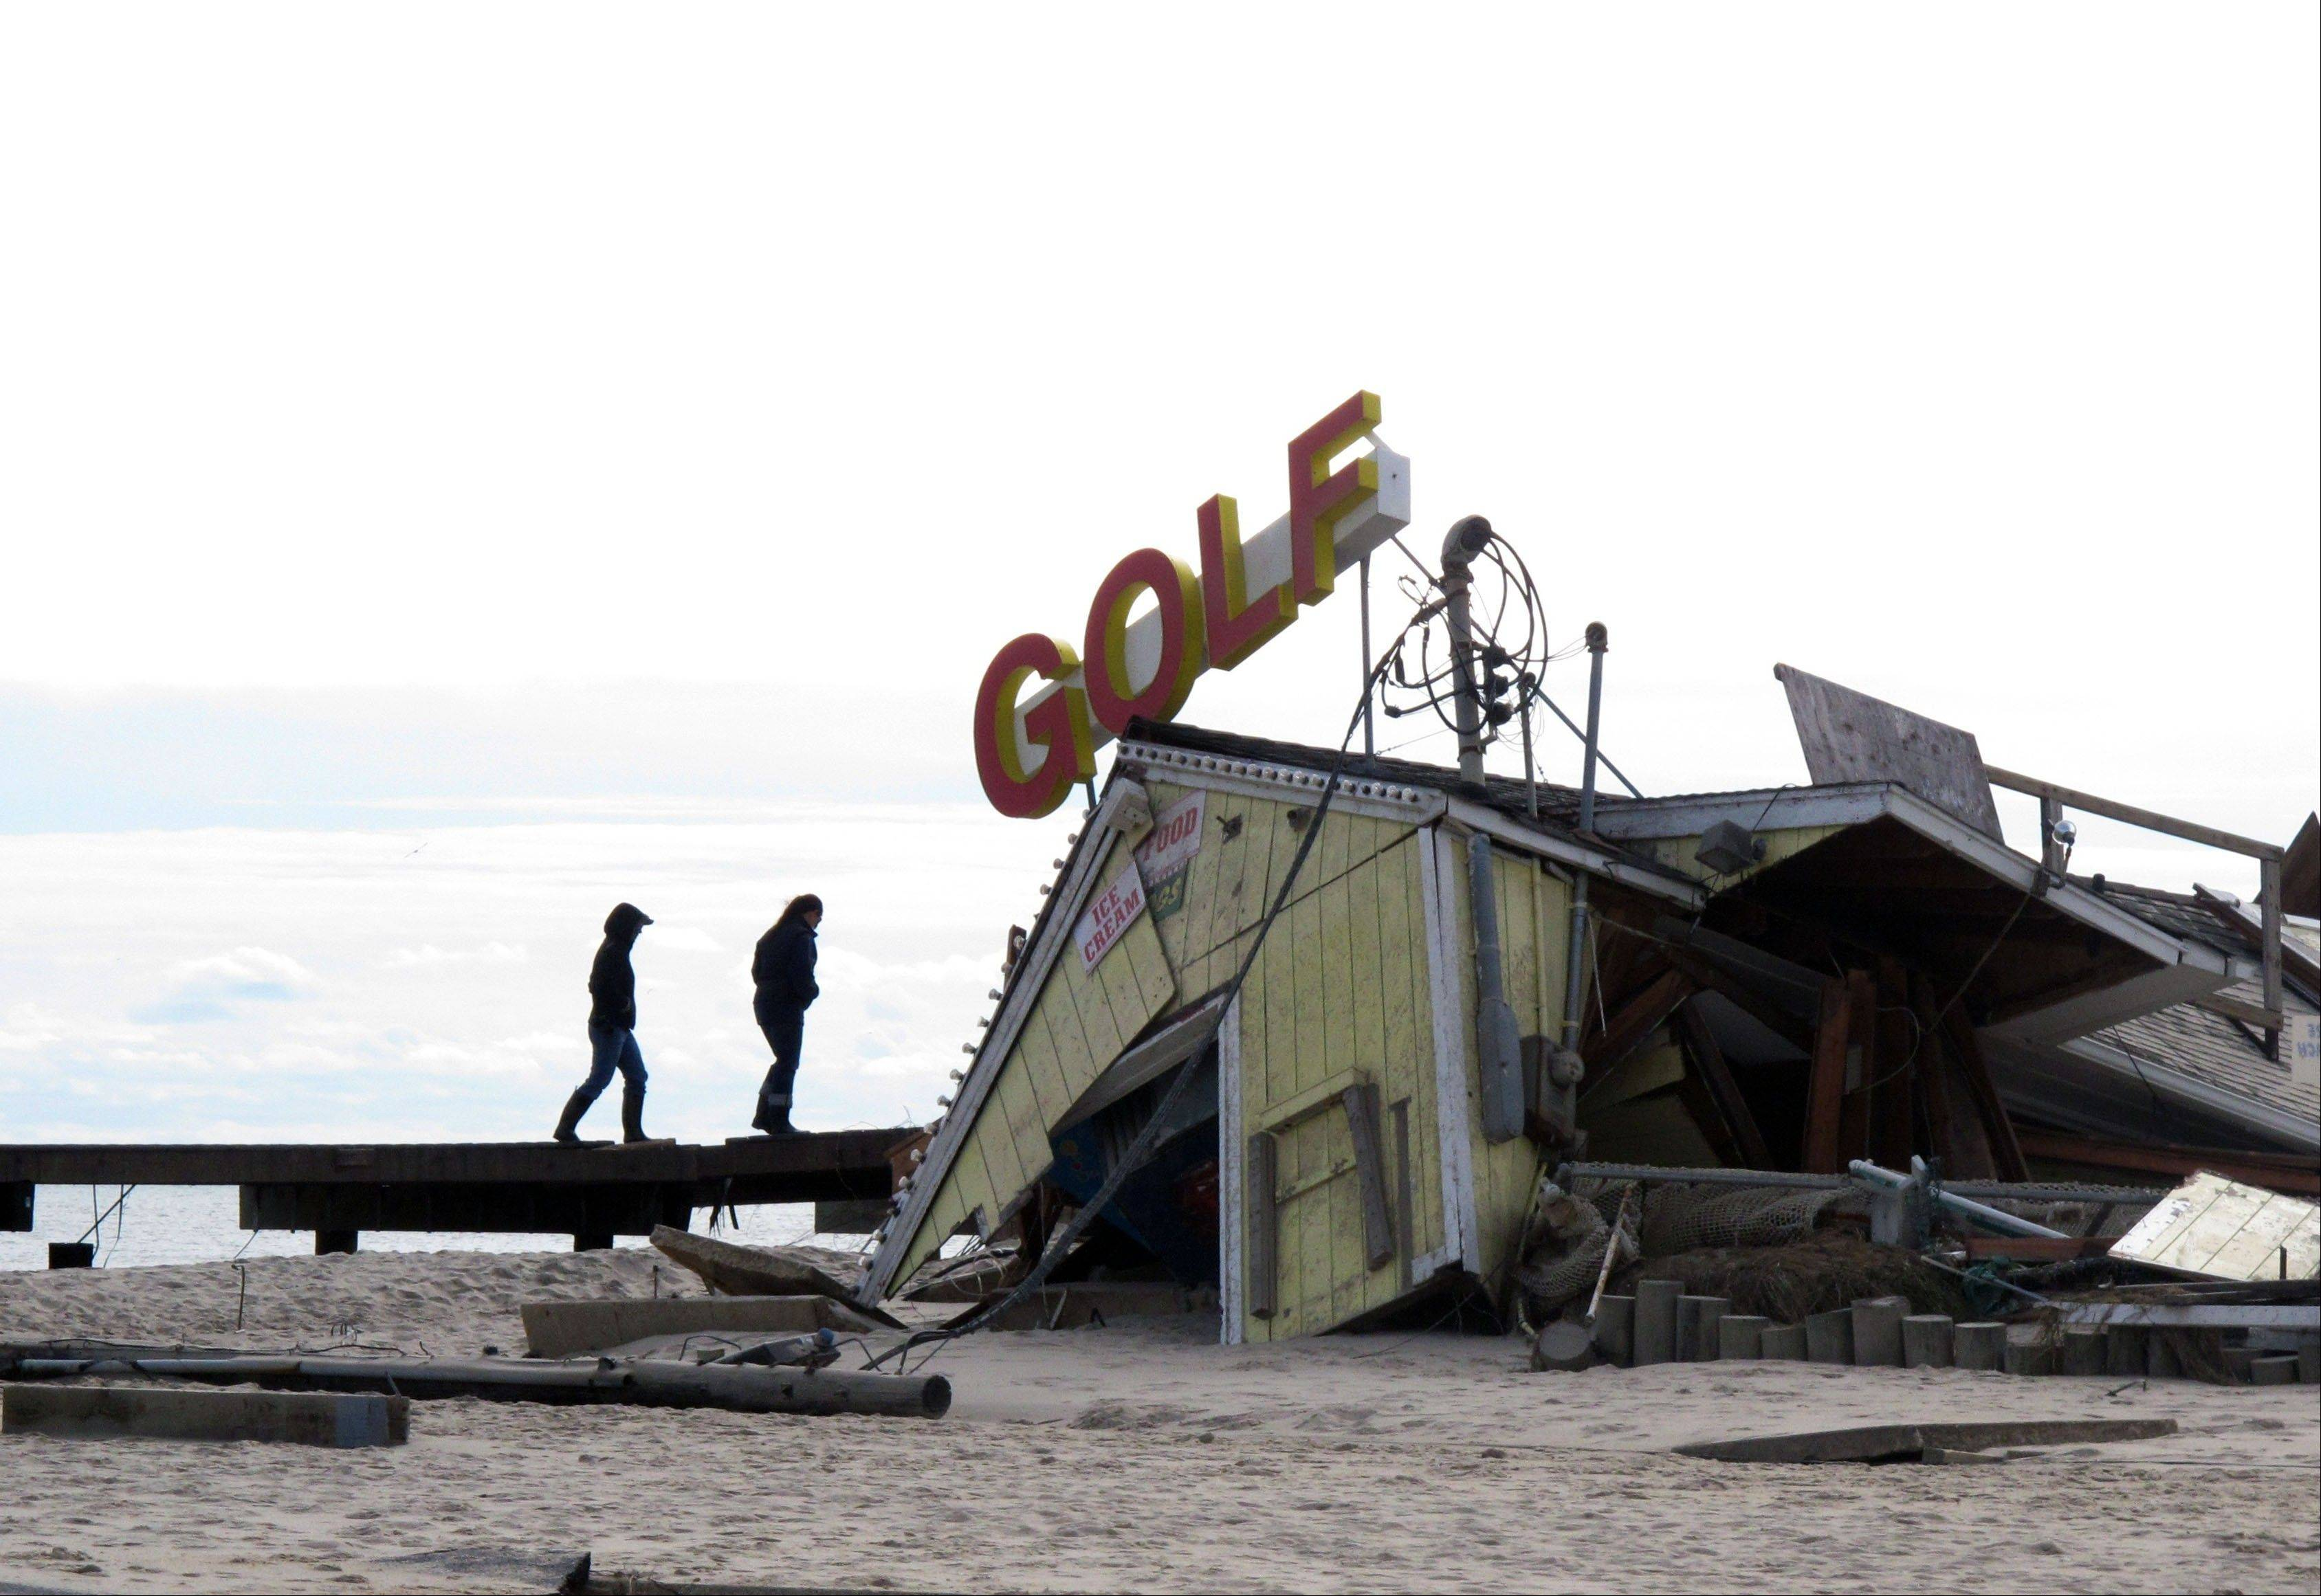 A mini-golf course on the boardwalk in Point Pleasant Beach N.J., was destroyed by Hurricane Sandy.